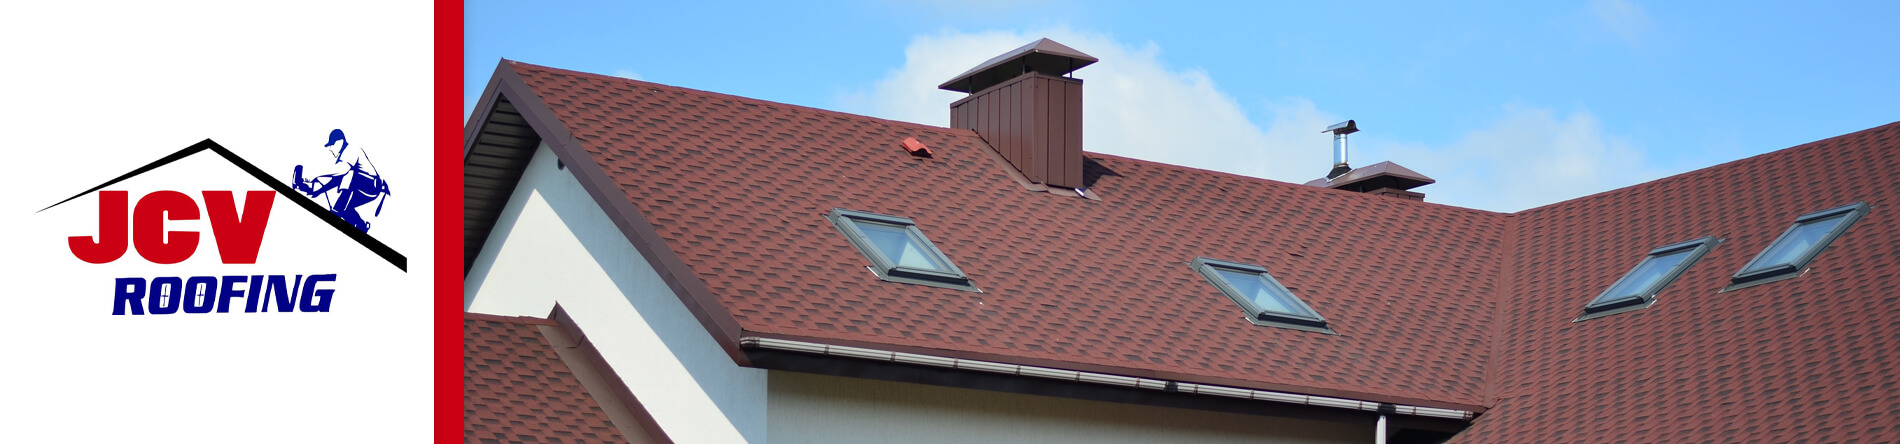 JCV Roofing is a Roofing Contractor in San Antonio, TX